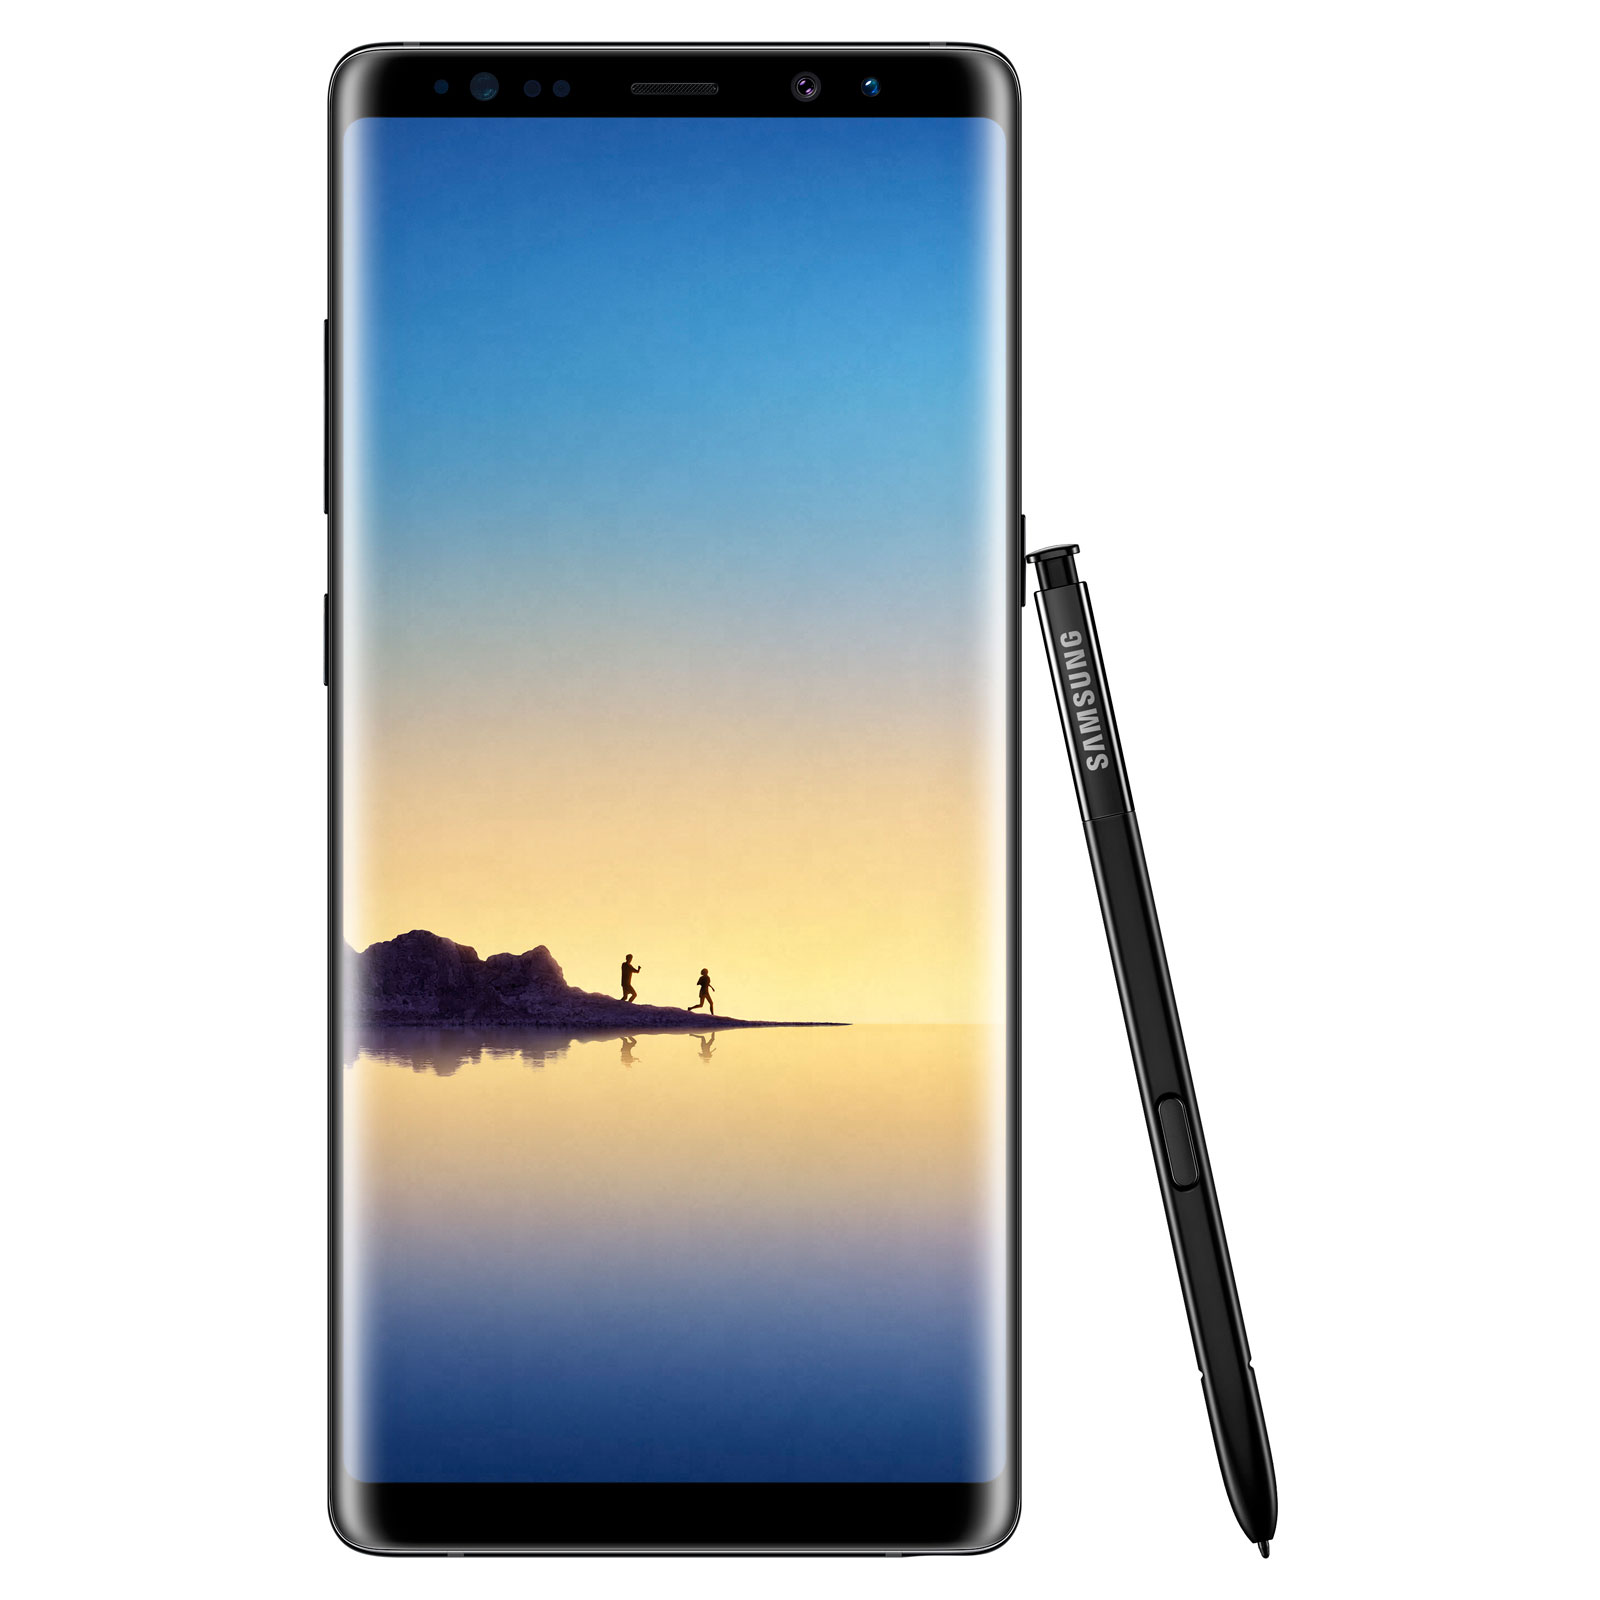 "Mobile & smartphone Samsung Galaxy Note 8 SM-N950 Noir 64 Go Smartphone 4G-LTE Advanced IP68 - Exynos 8895 8-Core 2.3 Ghz - RAM 6 Go - Ecran tactile 6.3"" 1440 x 2960 - 64 Go - NFC/Bluetooth 5.0 - 3300 mAh - Android 7.1"